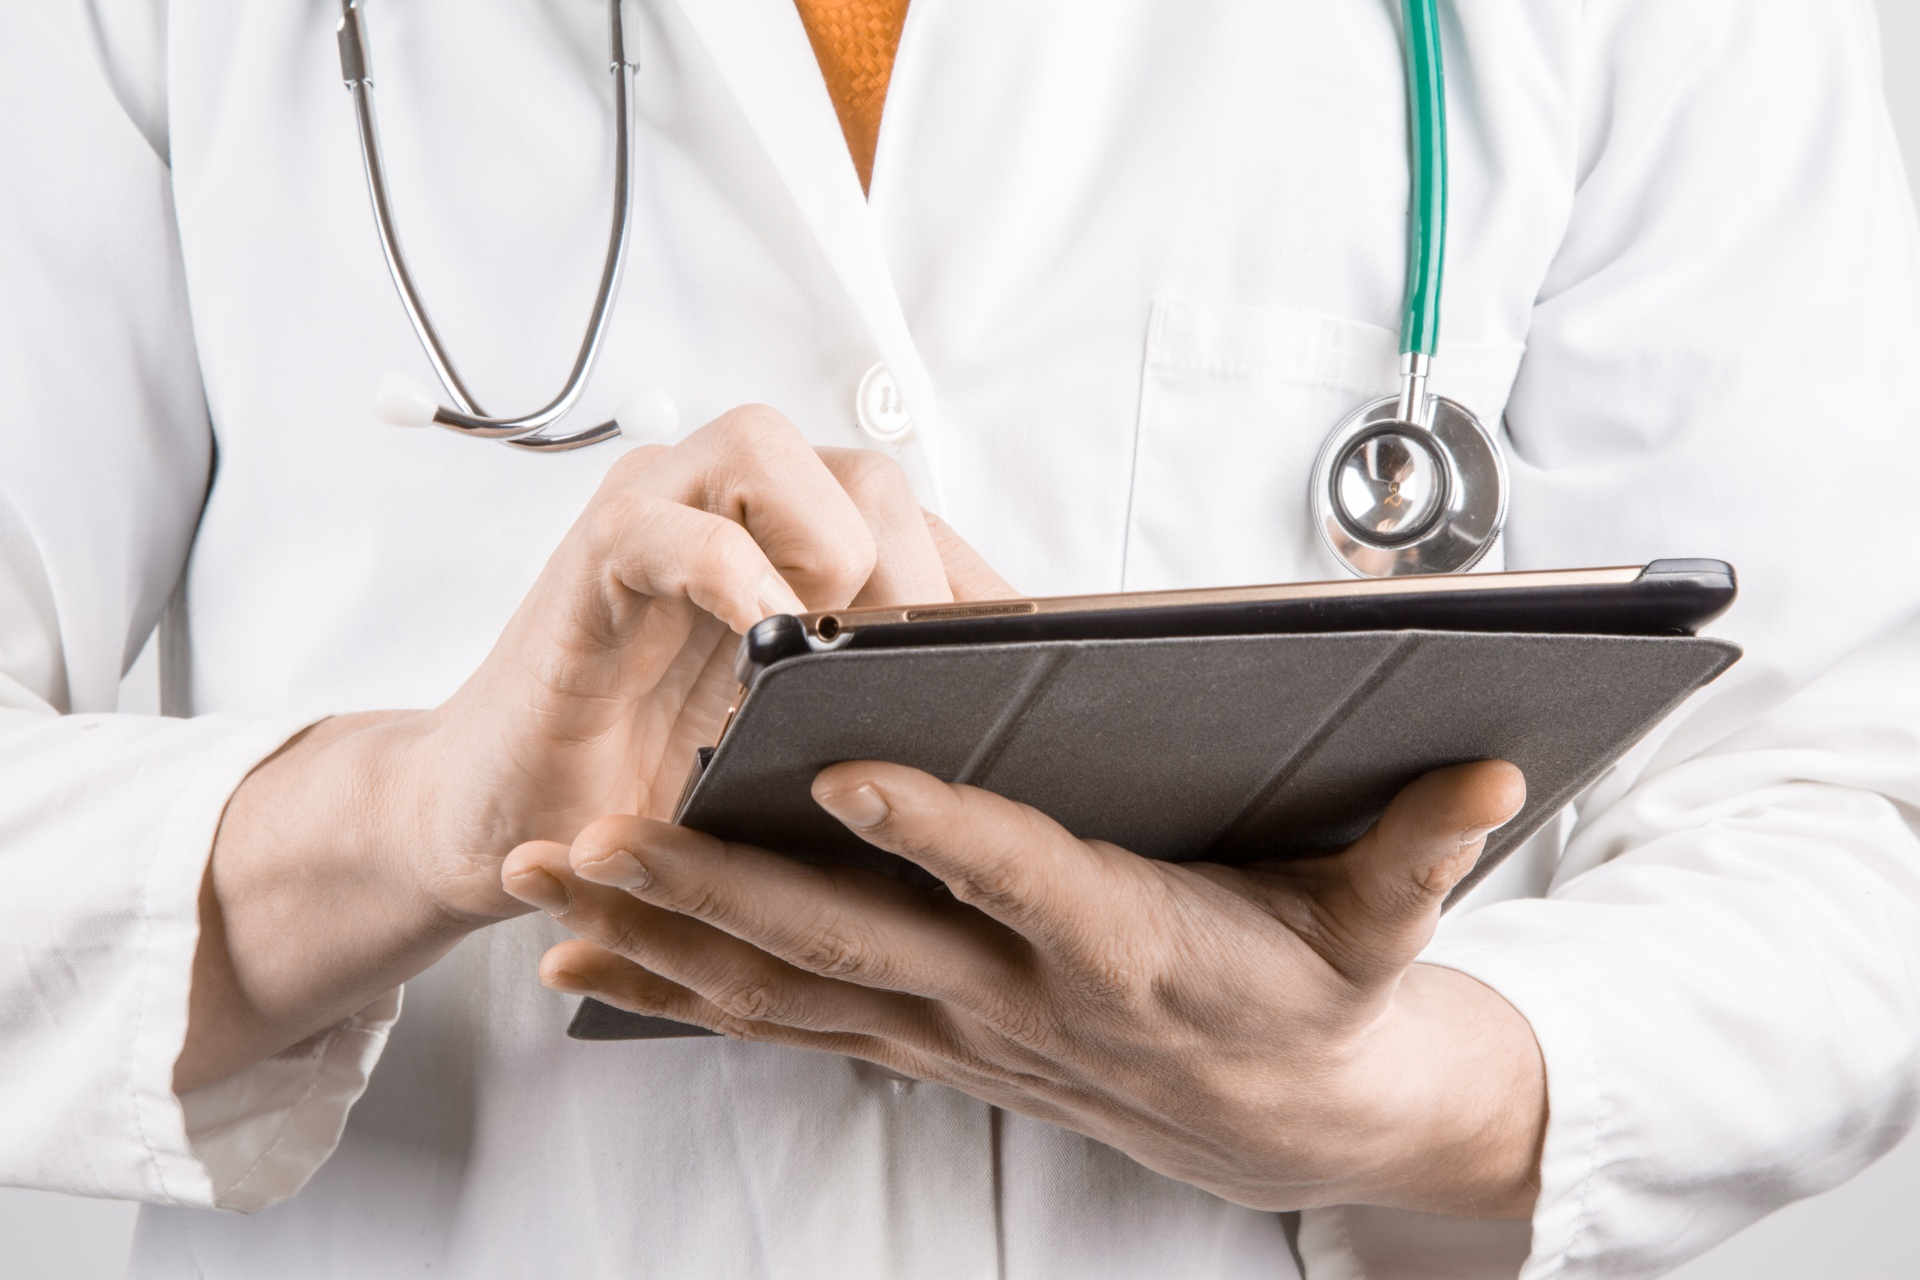 file/ELEMENTO_NEWSLETTER/20541/sanita_doctor-with-tablet.jpg